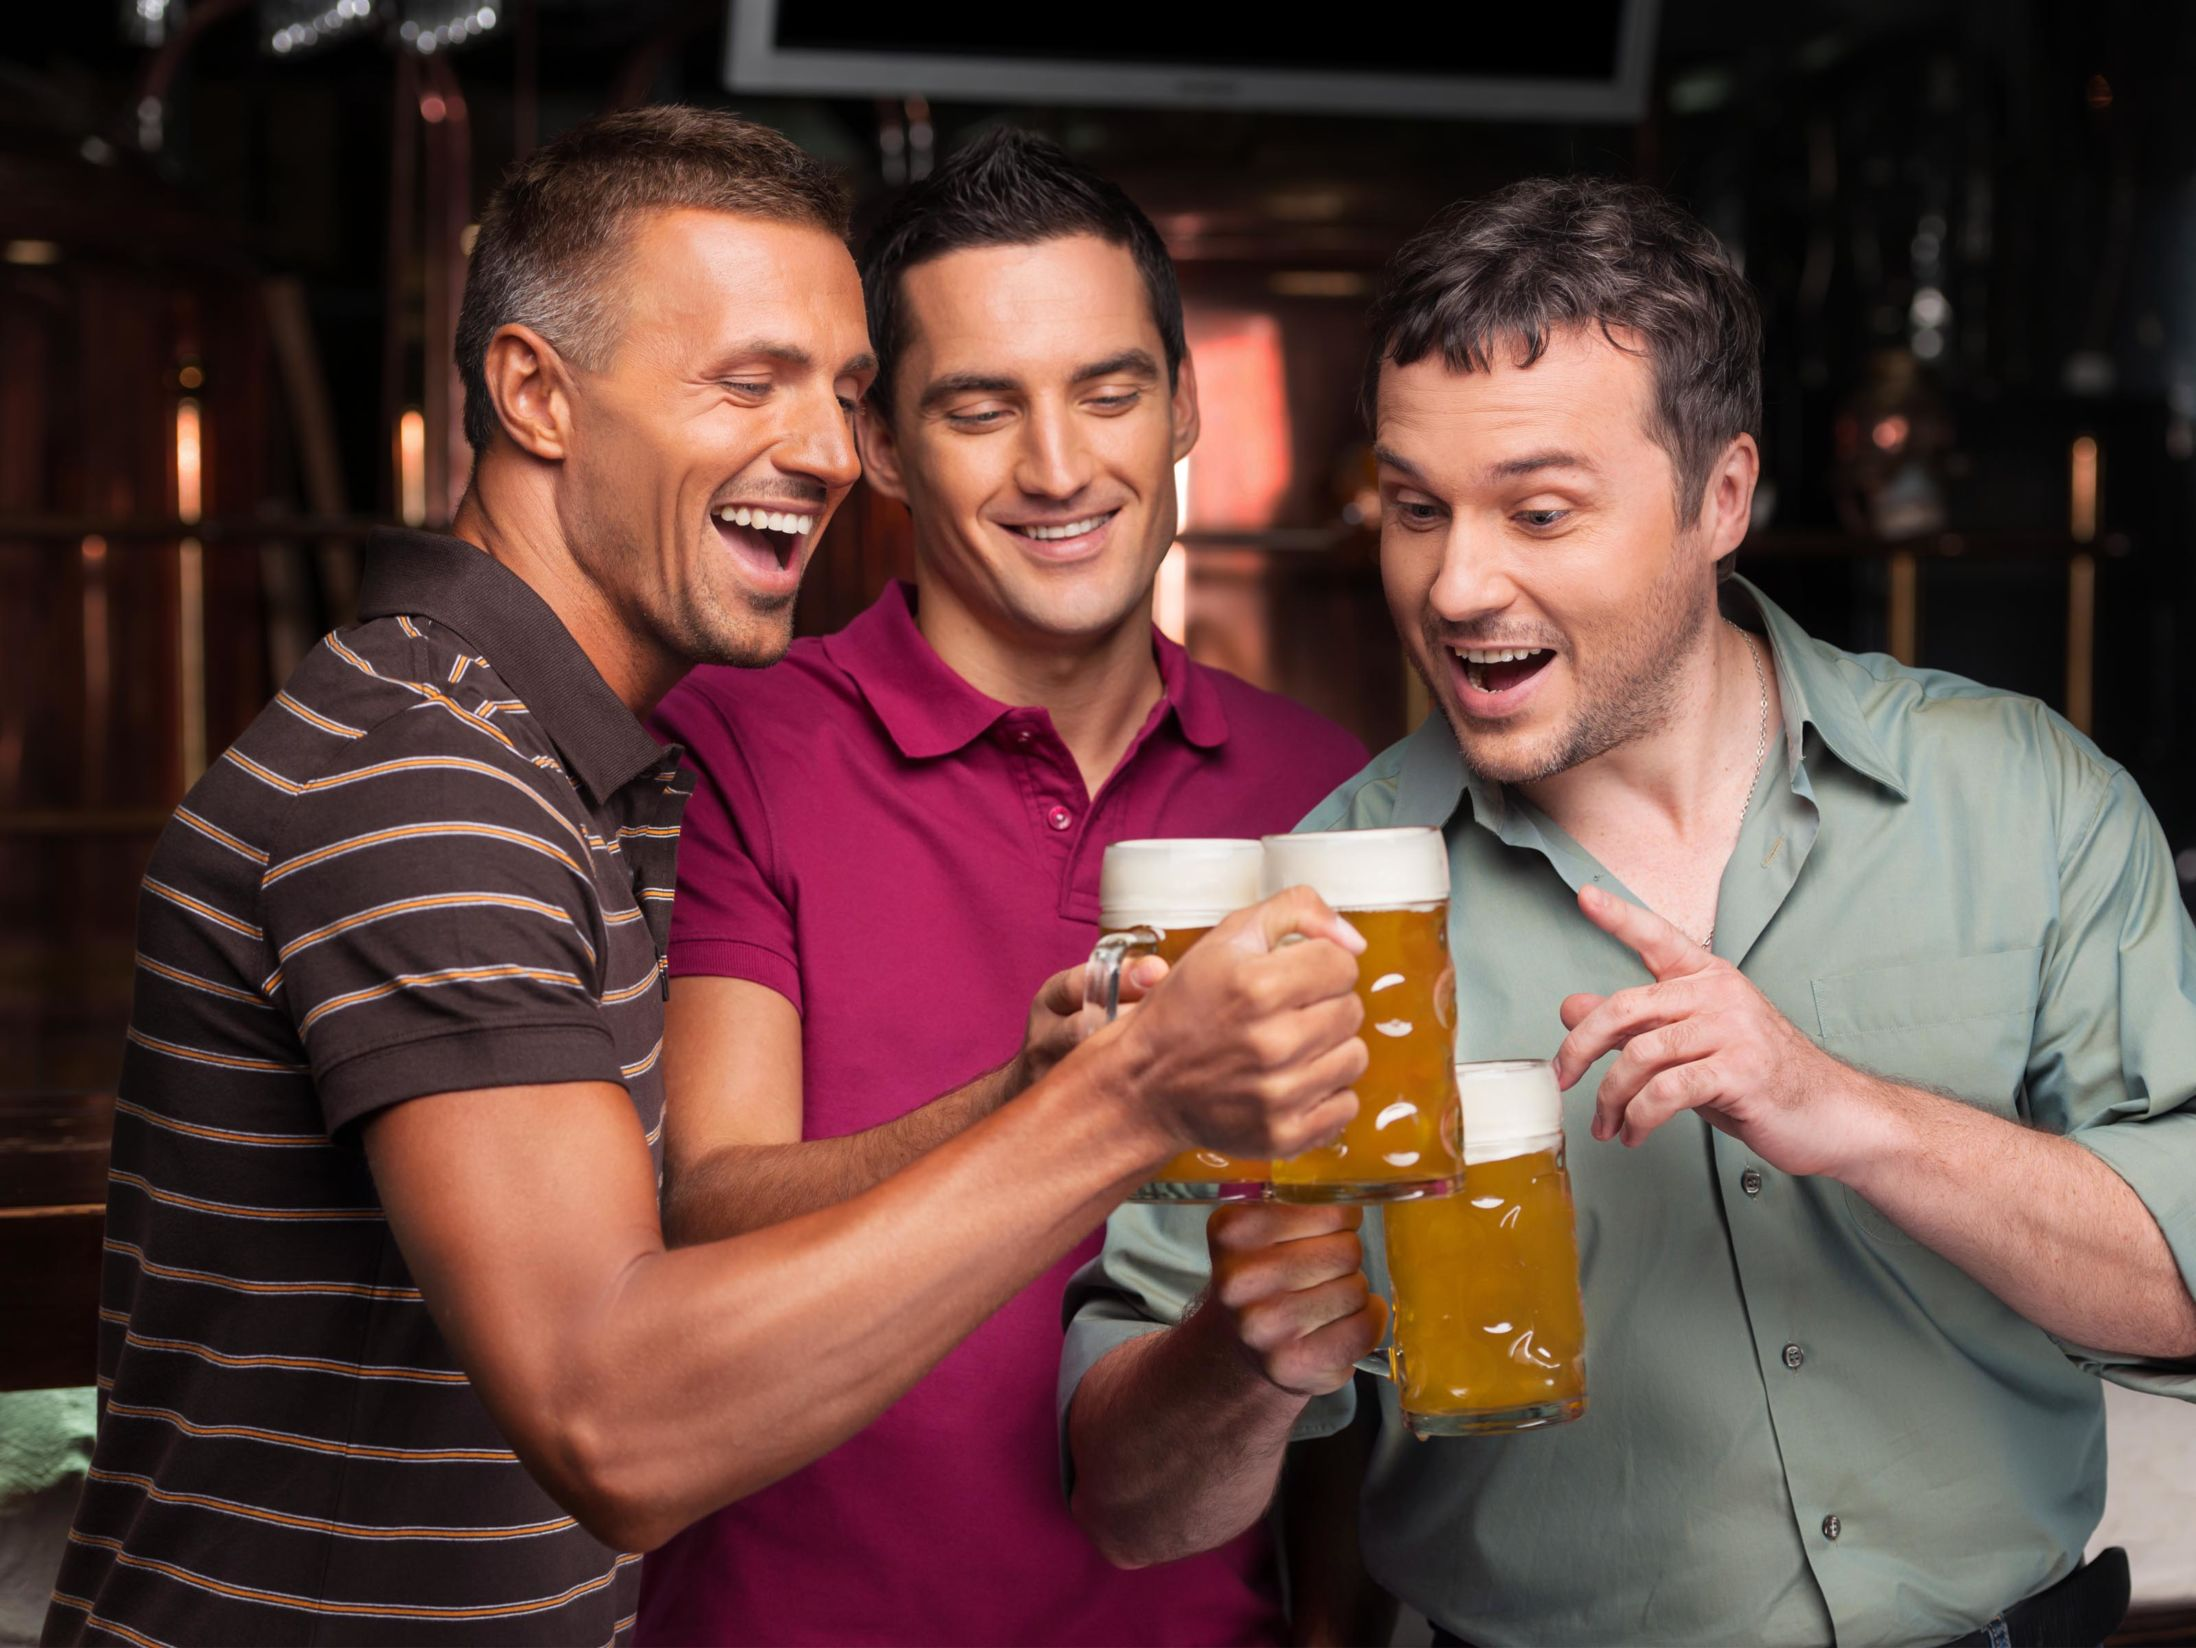 Do You Need Some Harrogate Stag Do Ideas?